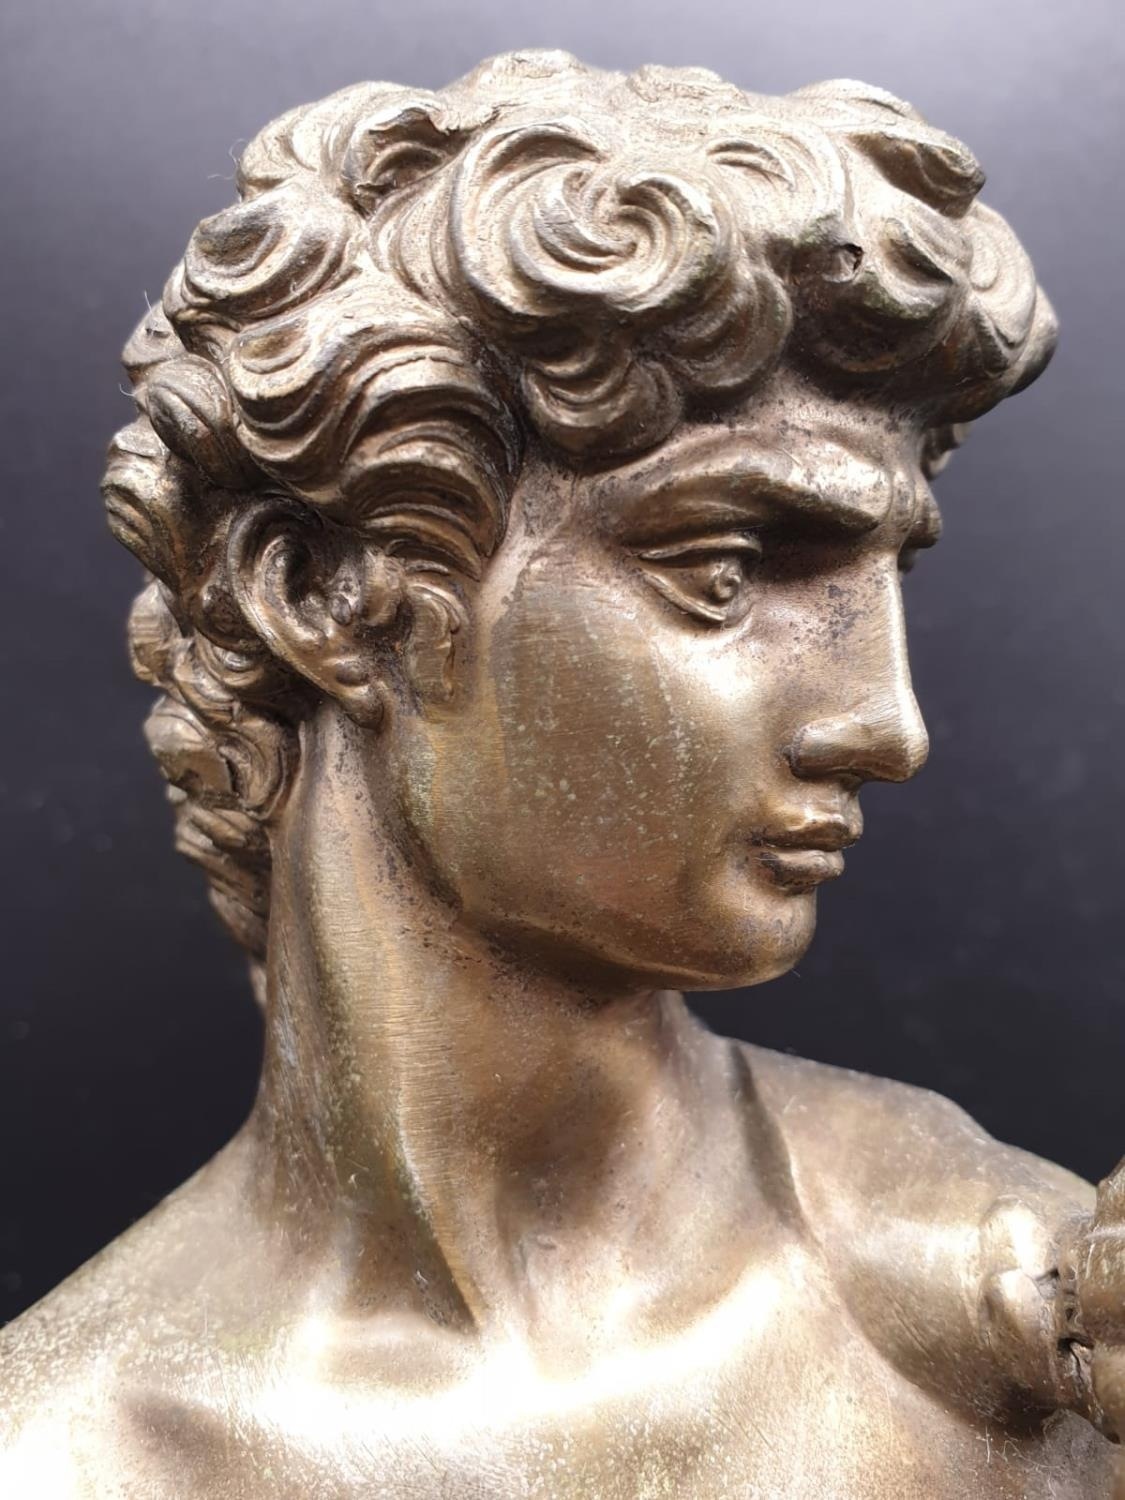 A Statue of Michelangelo's David in Brass on a Marble Base 40cms Tall 3.6kg - Image 3 of 9